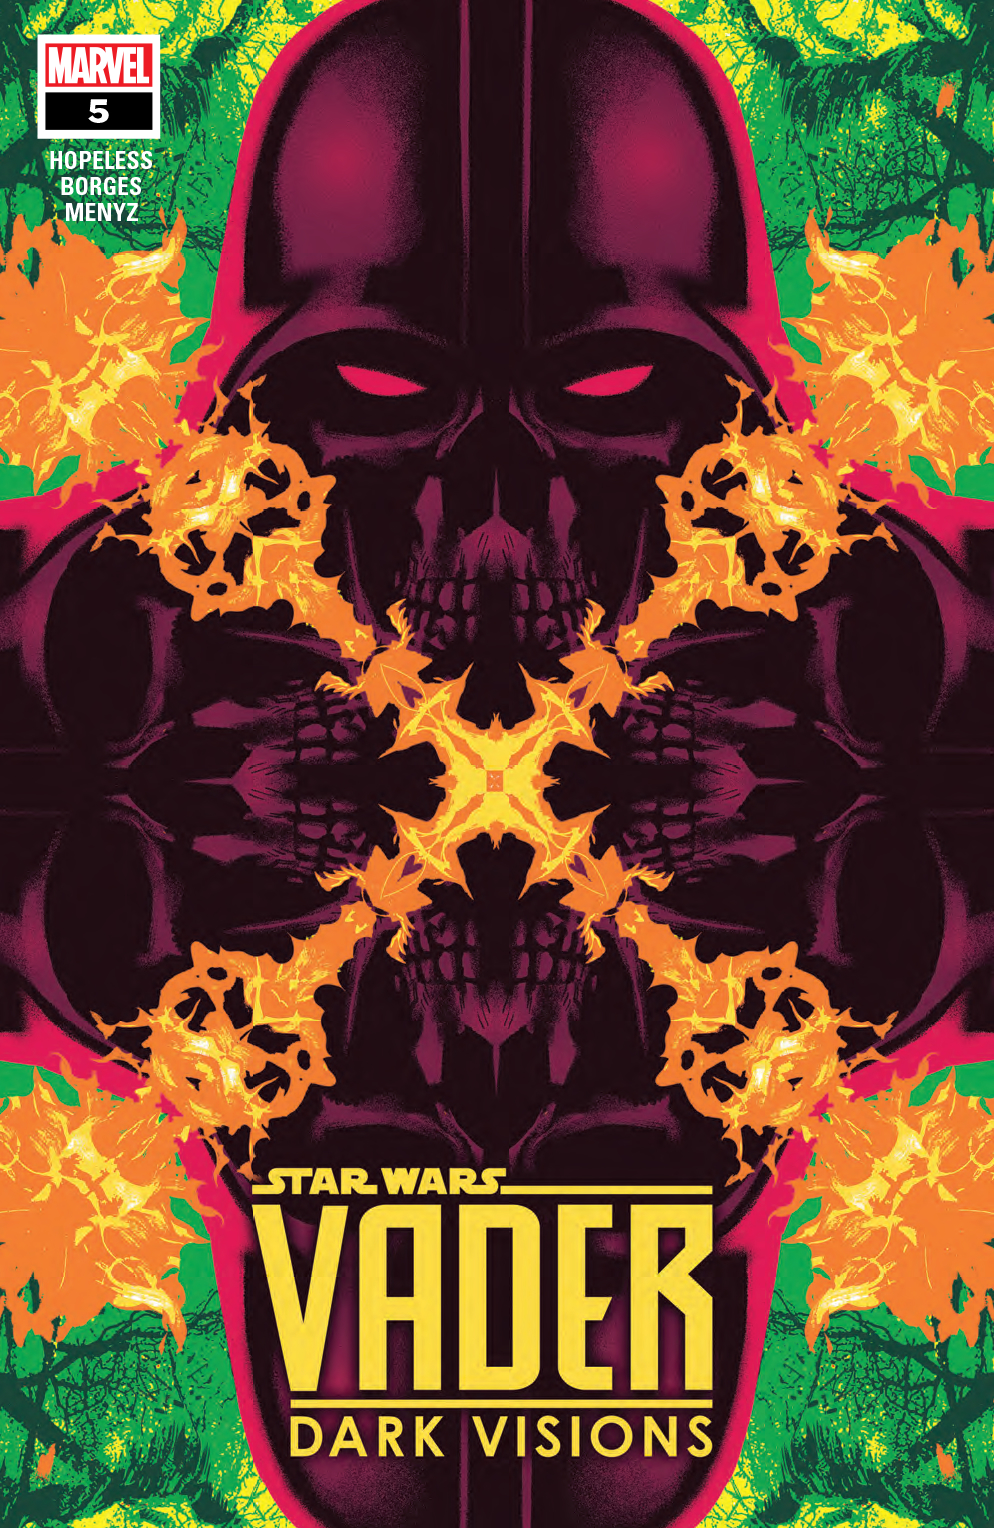 STAR WARS VADER DARK VISIONS #5 (OF 5)